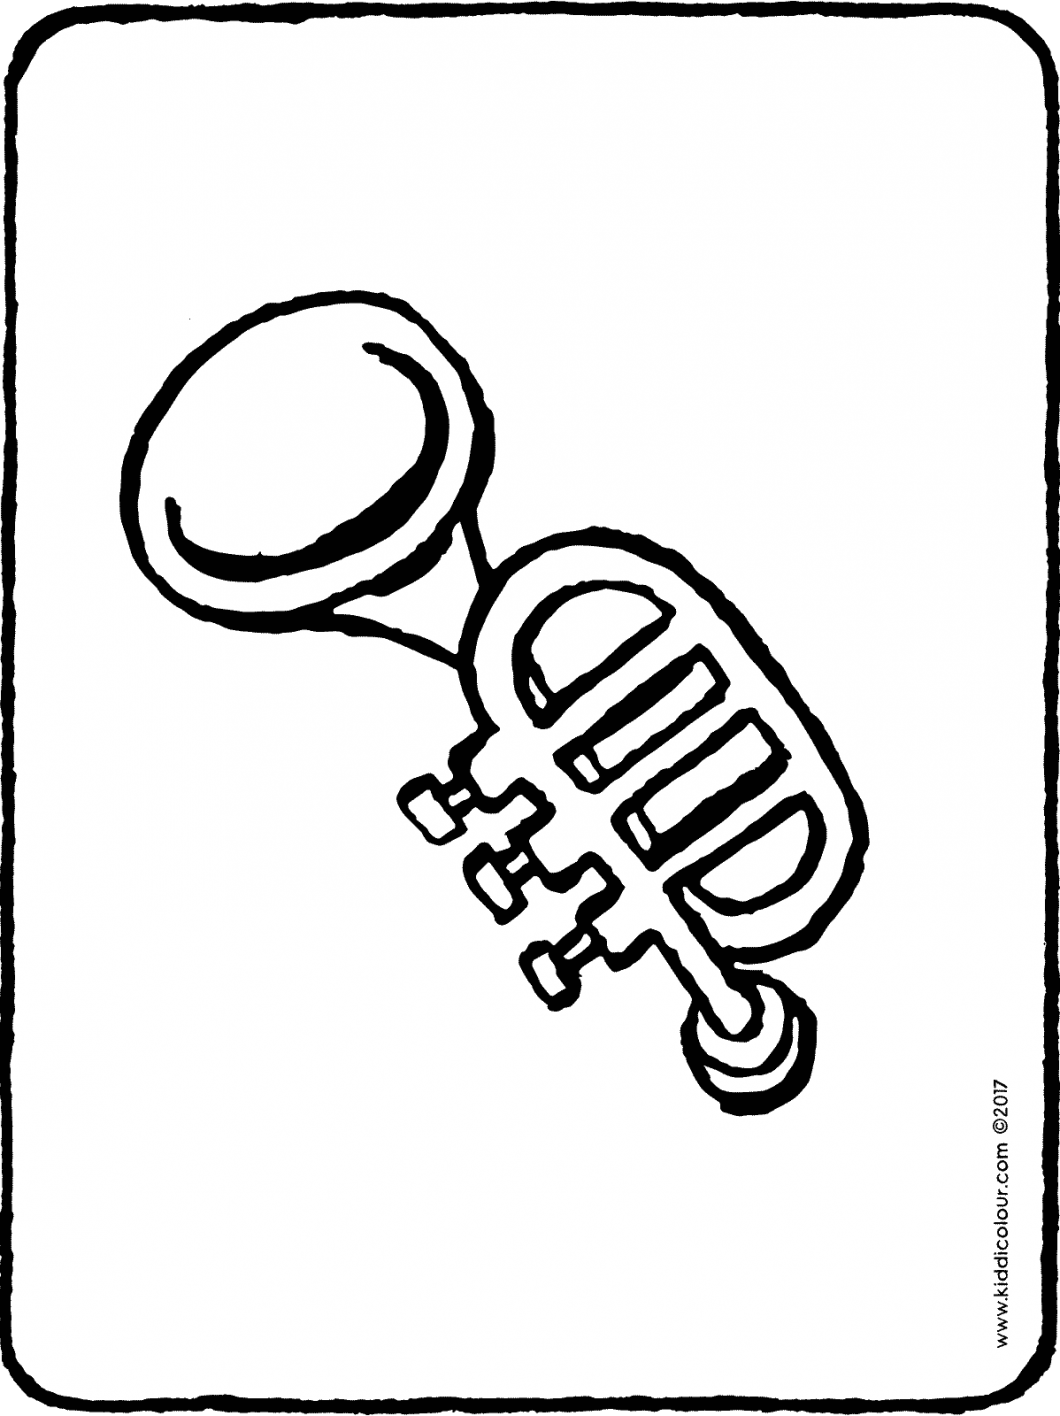 trumpet colouring page page drawing picture 01H